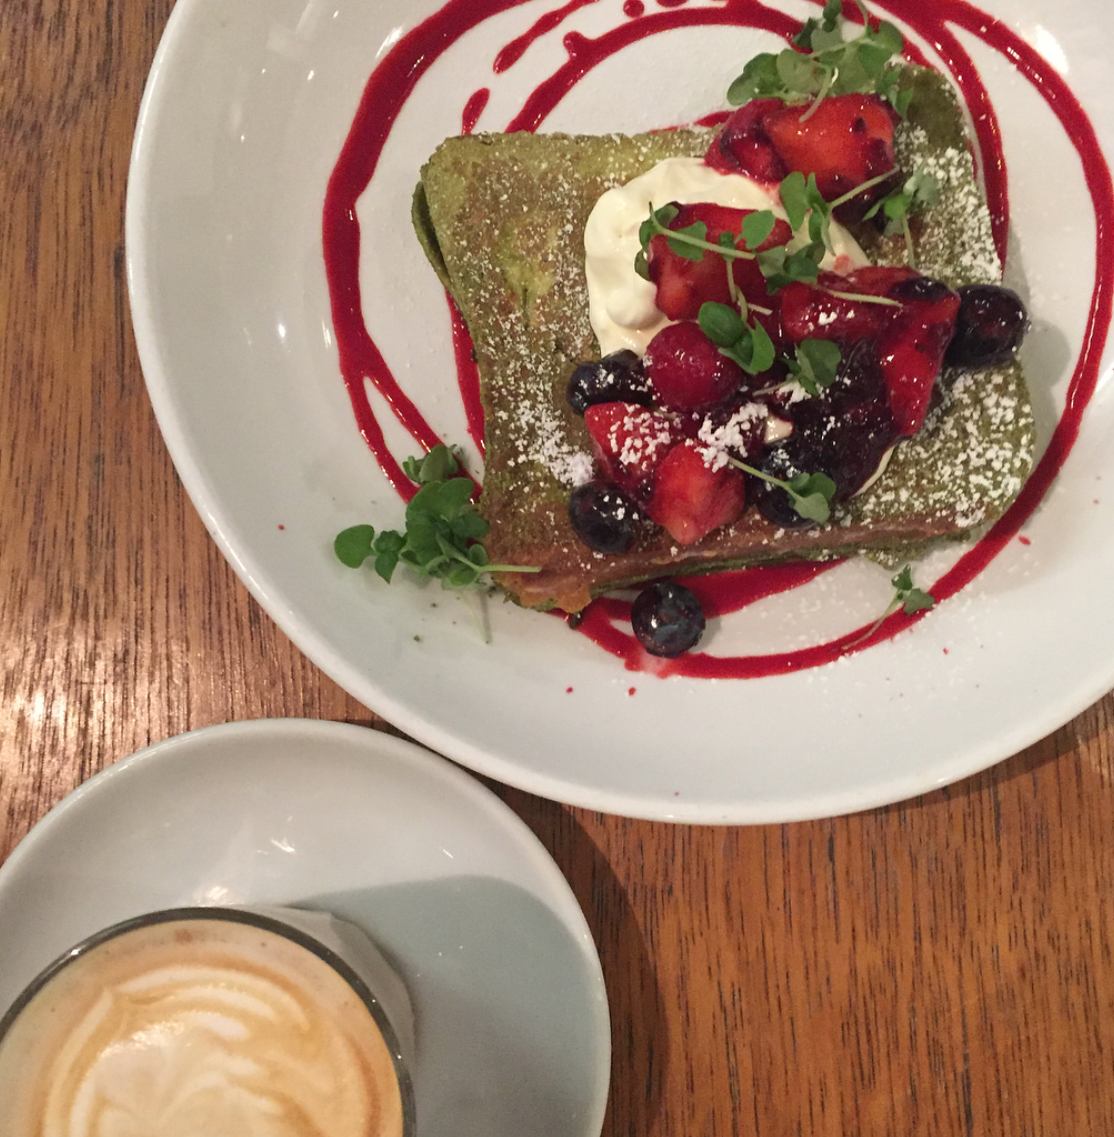 lantana french toast – with matcha powder, icing sugar, berries, coulis and a healthy dollop of thick cream. Flat white also pictured just in the shot.